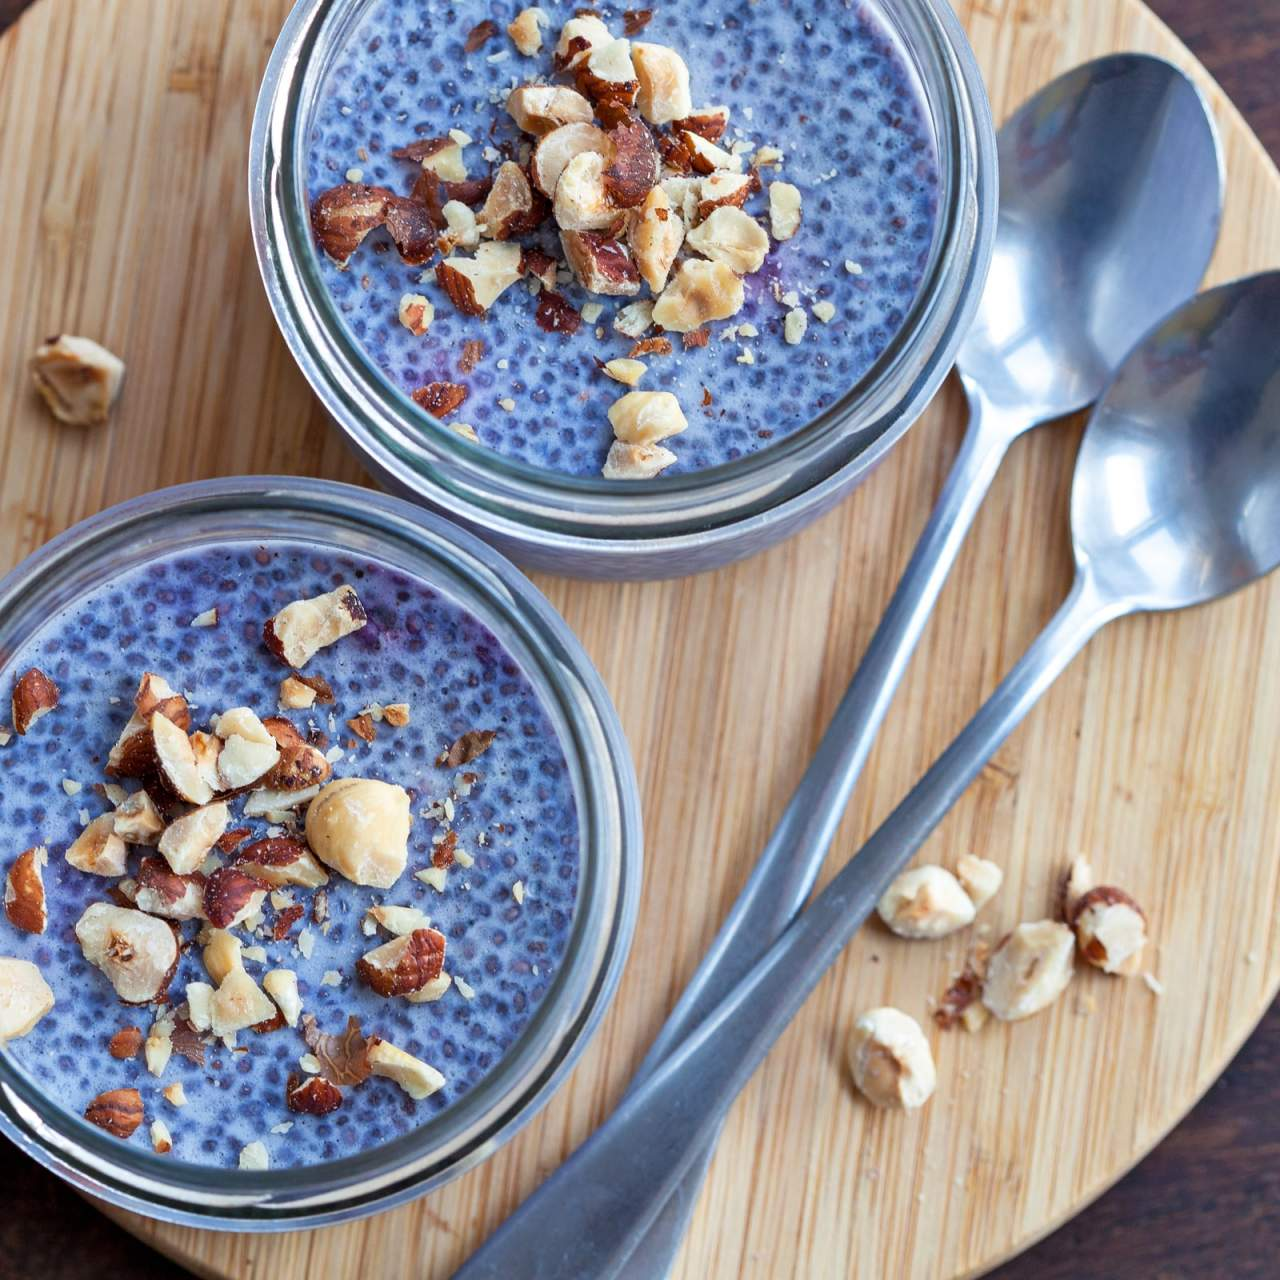 Blueberry Chia Seed Pudding advise